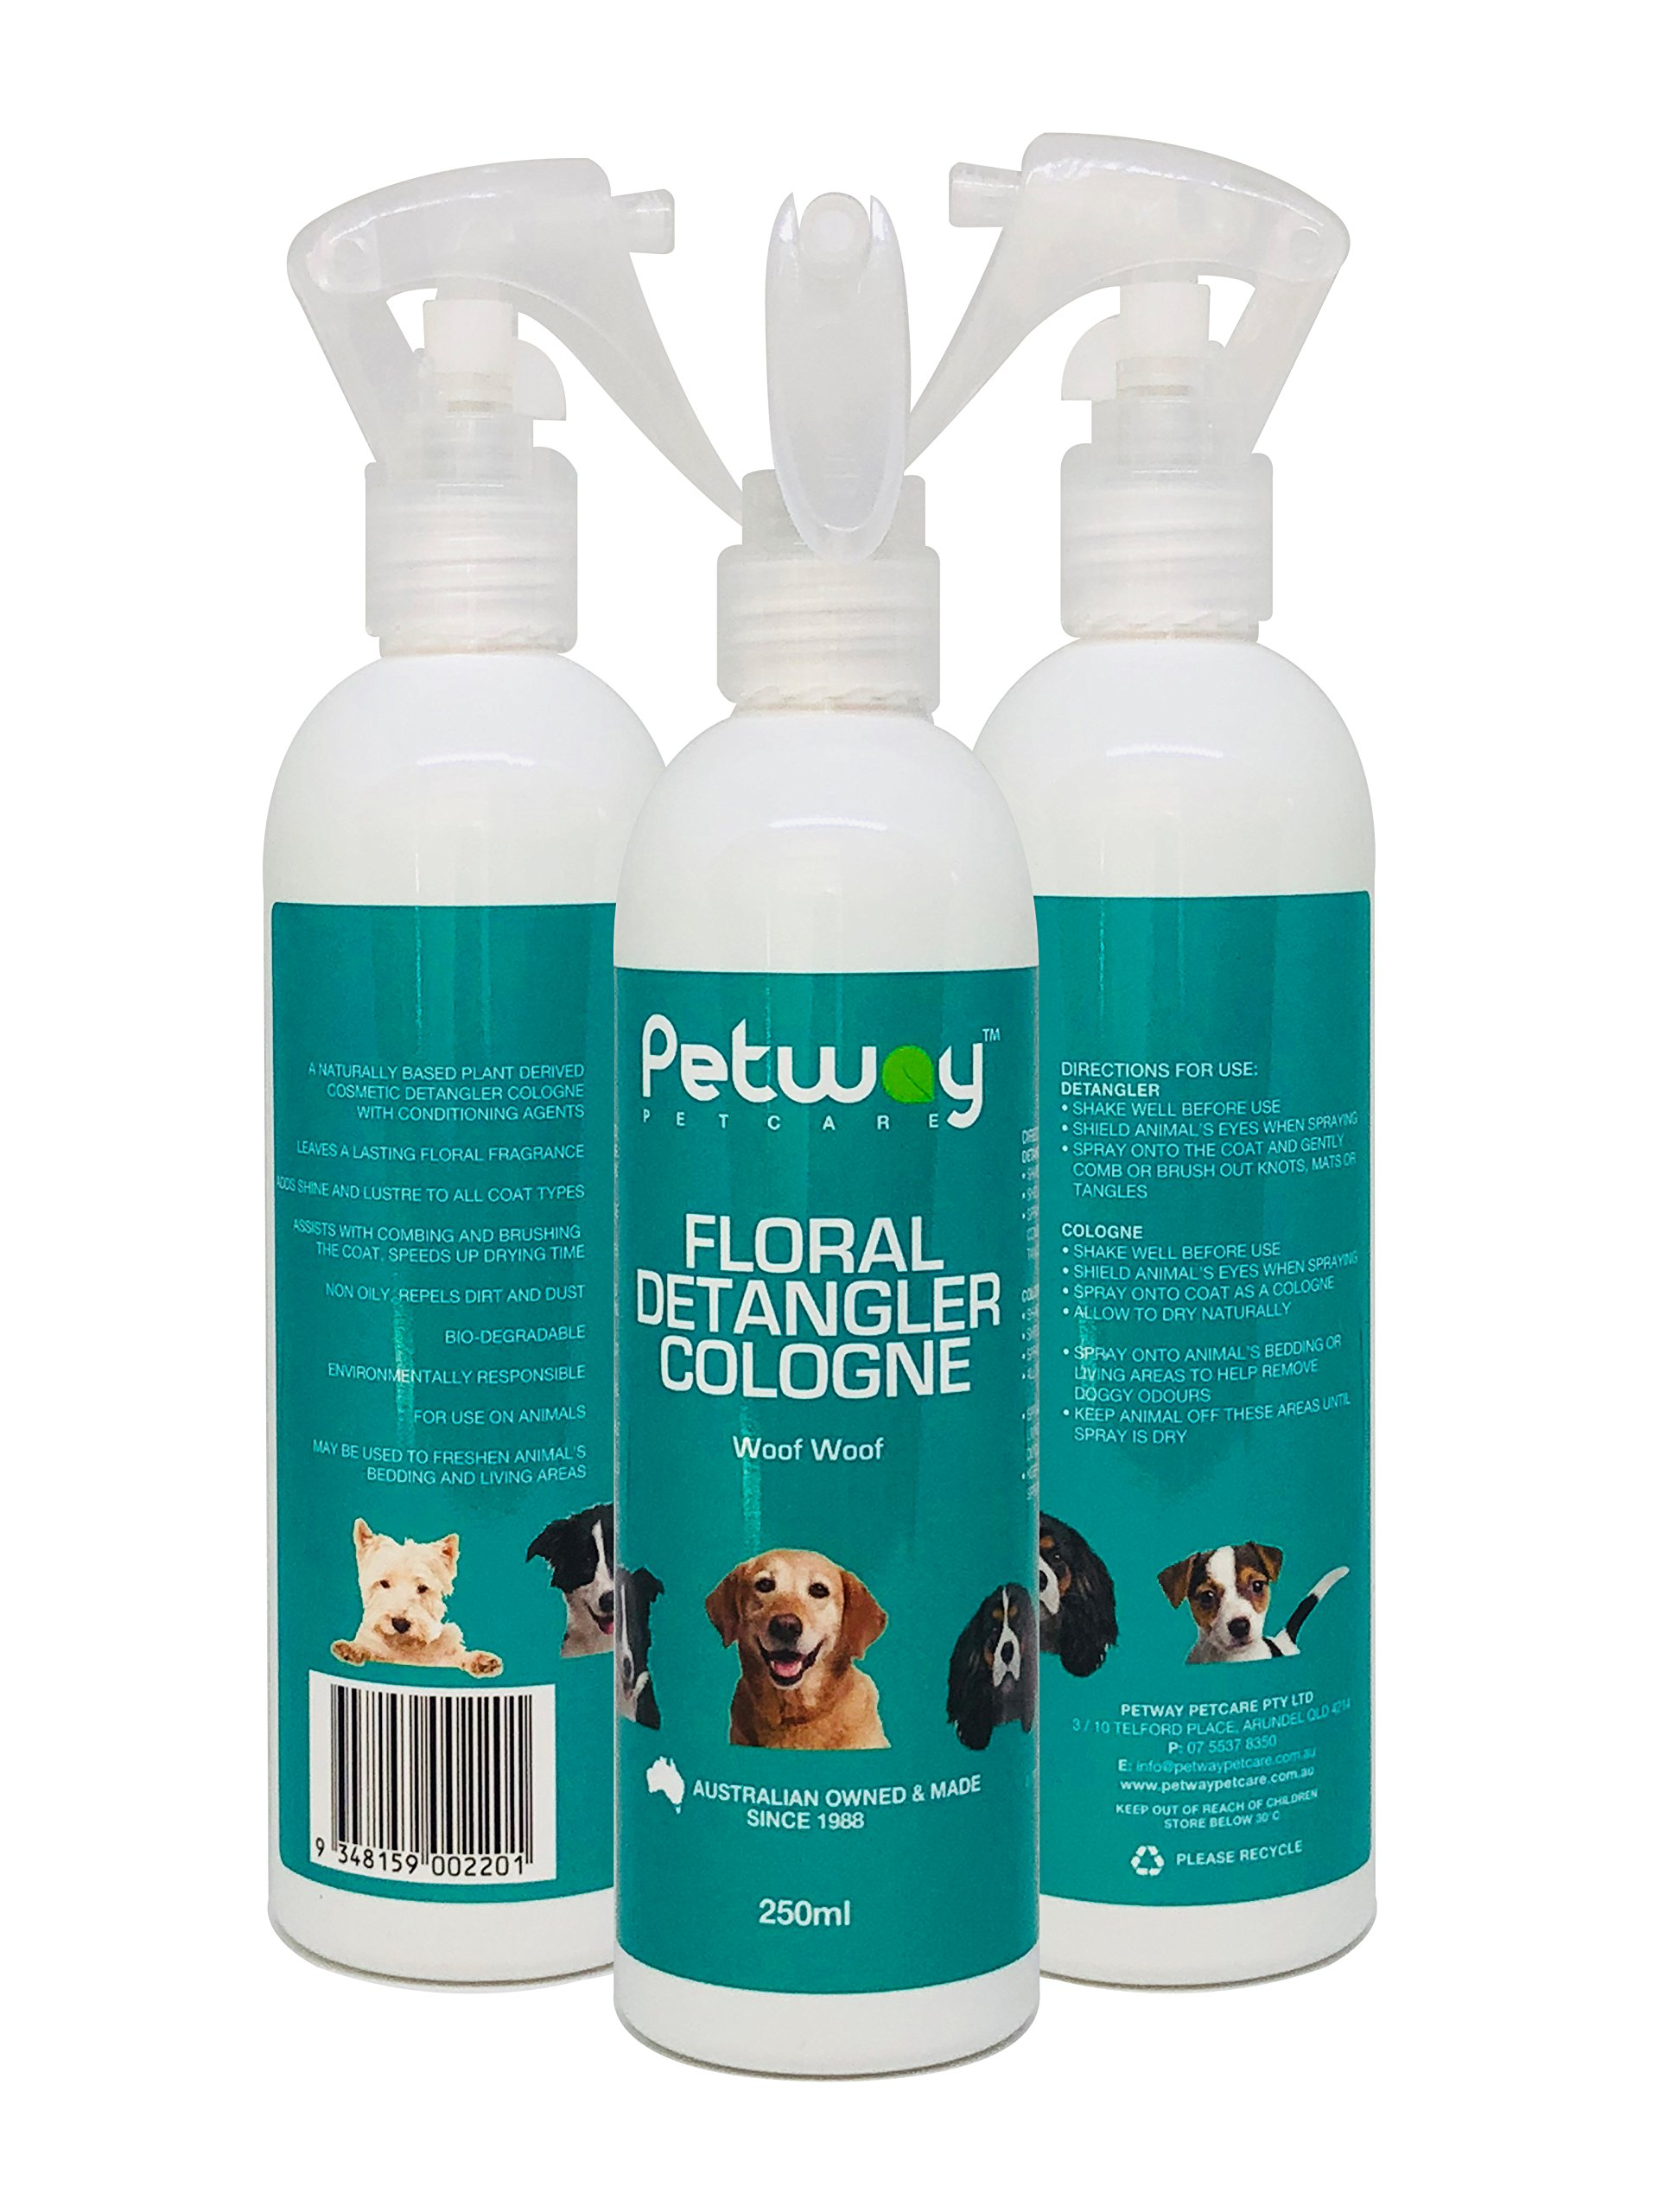 PETWAY Petcare Floral Detangler Cologne – Pet Cologne, Detangling and Dematting Spray with Deodorizing and Conditioning Qualities – Dog Grooming Detangler Conditioner Spray - 250ml by PETWAY (Image #2)